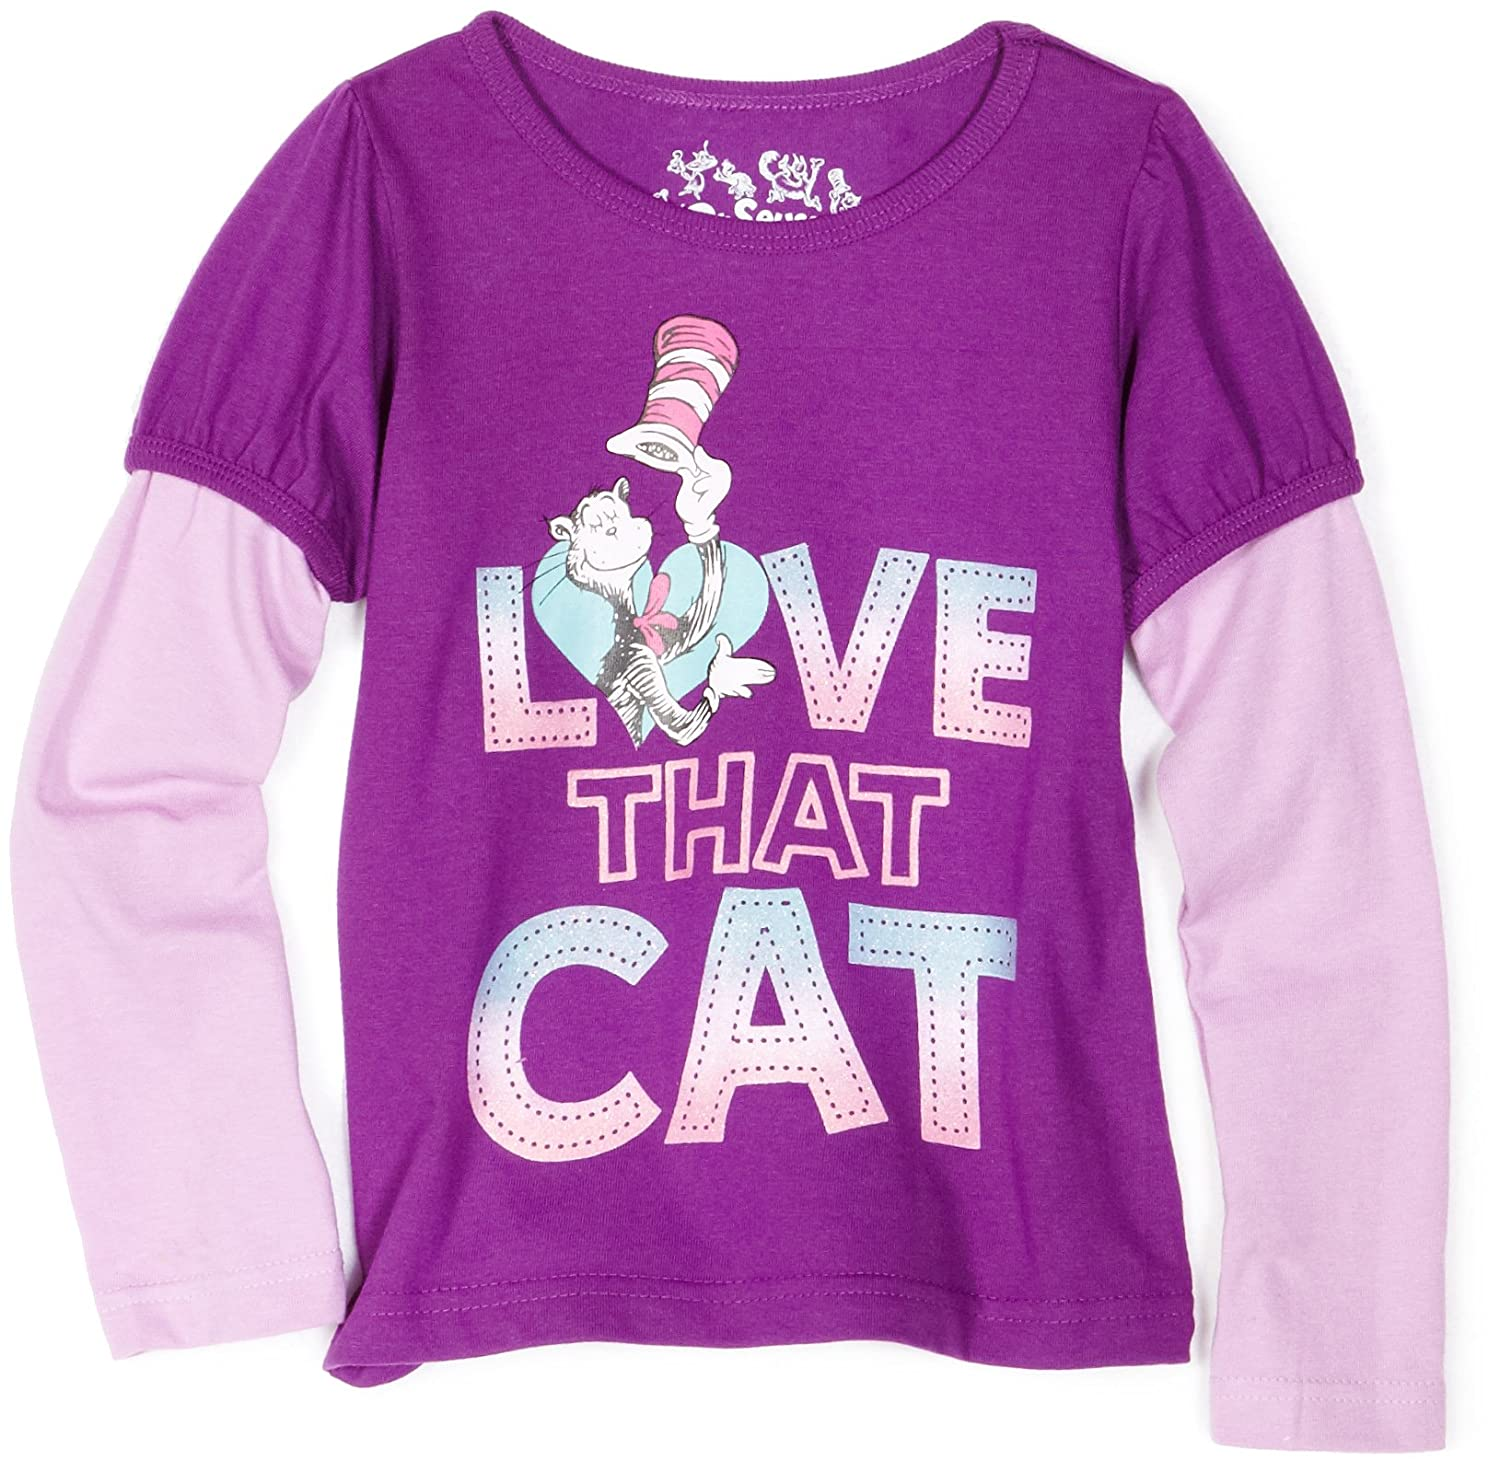 Dr Seuss Kids Shirts: Kids' T-Shirt Of The Day For Dr. Seuss's Birthday!